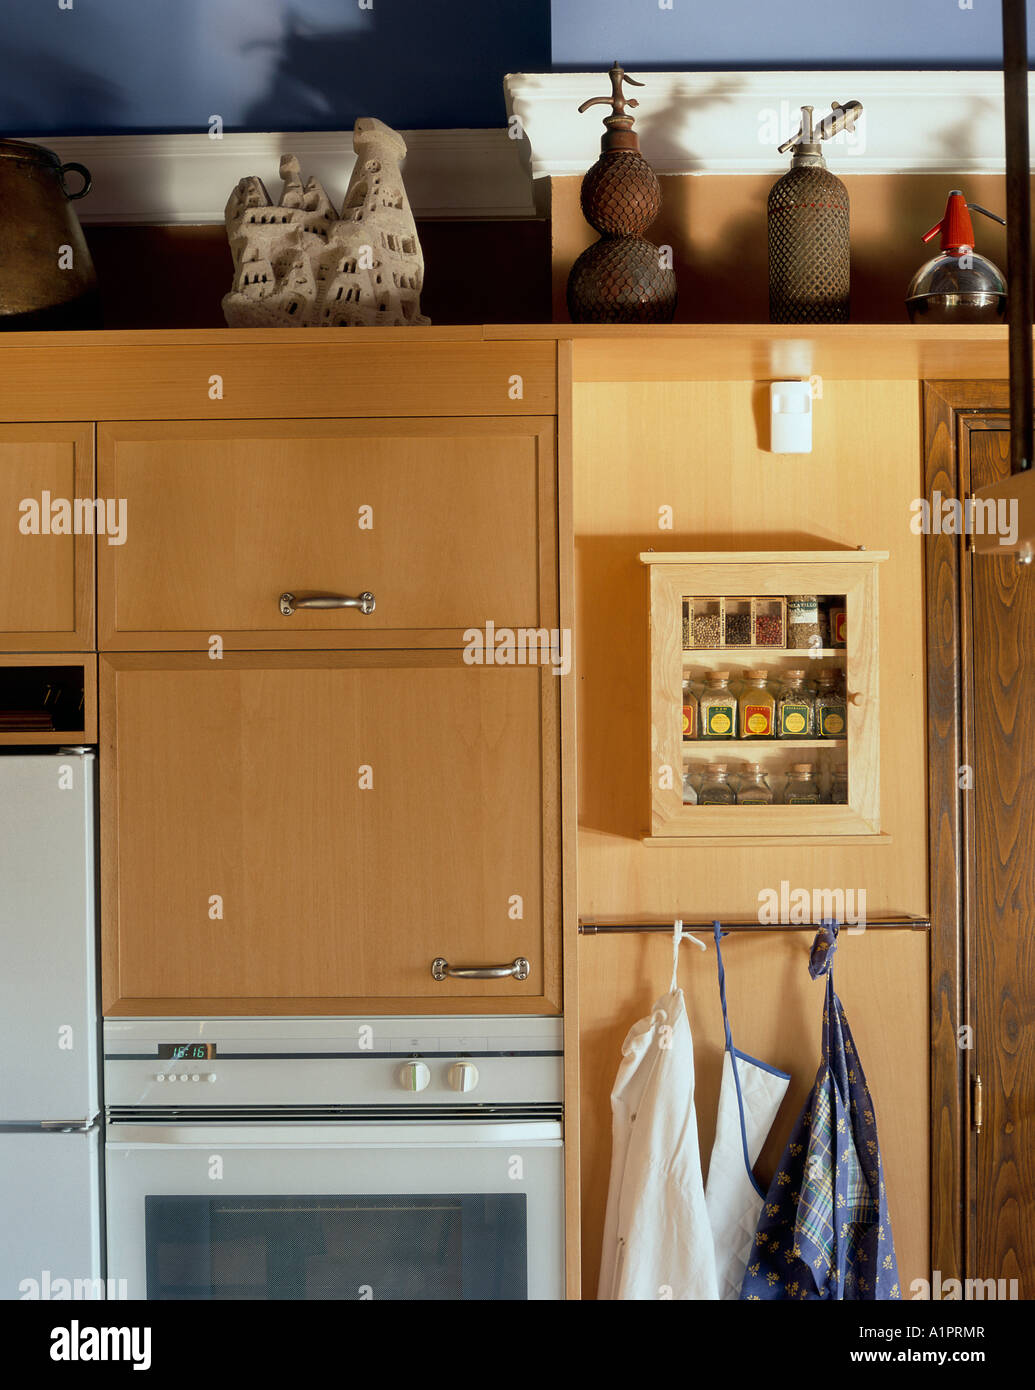 View of aprons hung near a cabinet in a kitchen - Stock Image